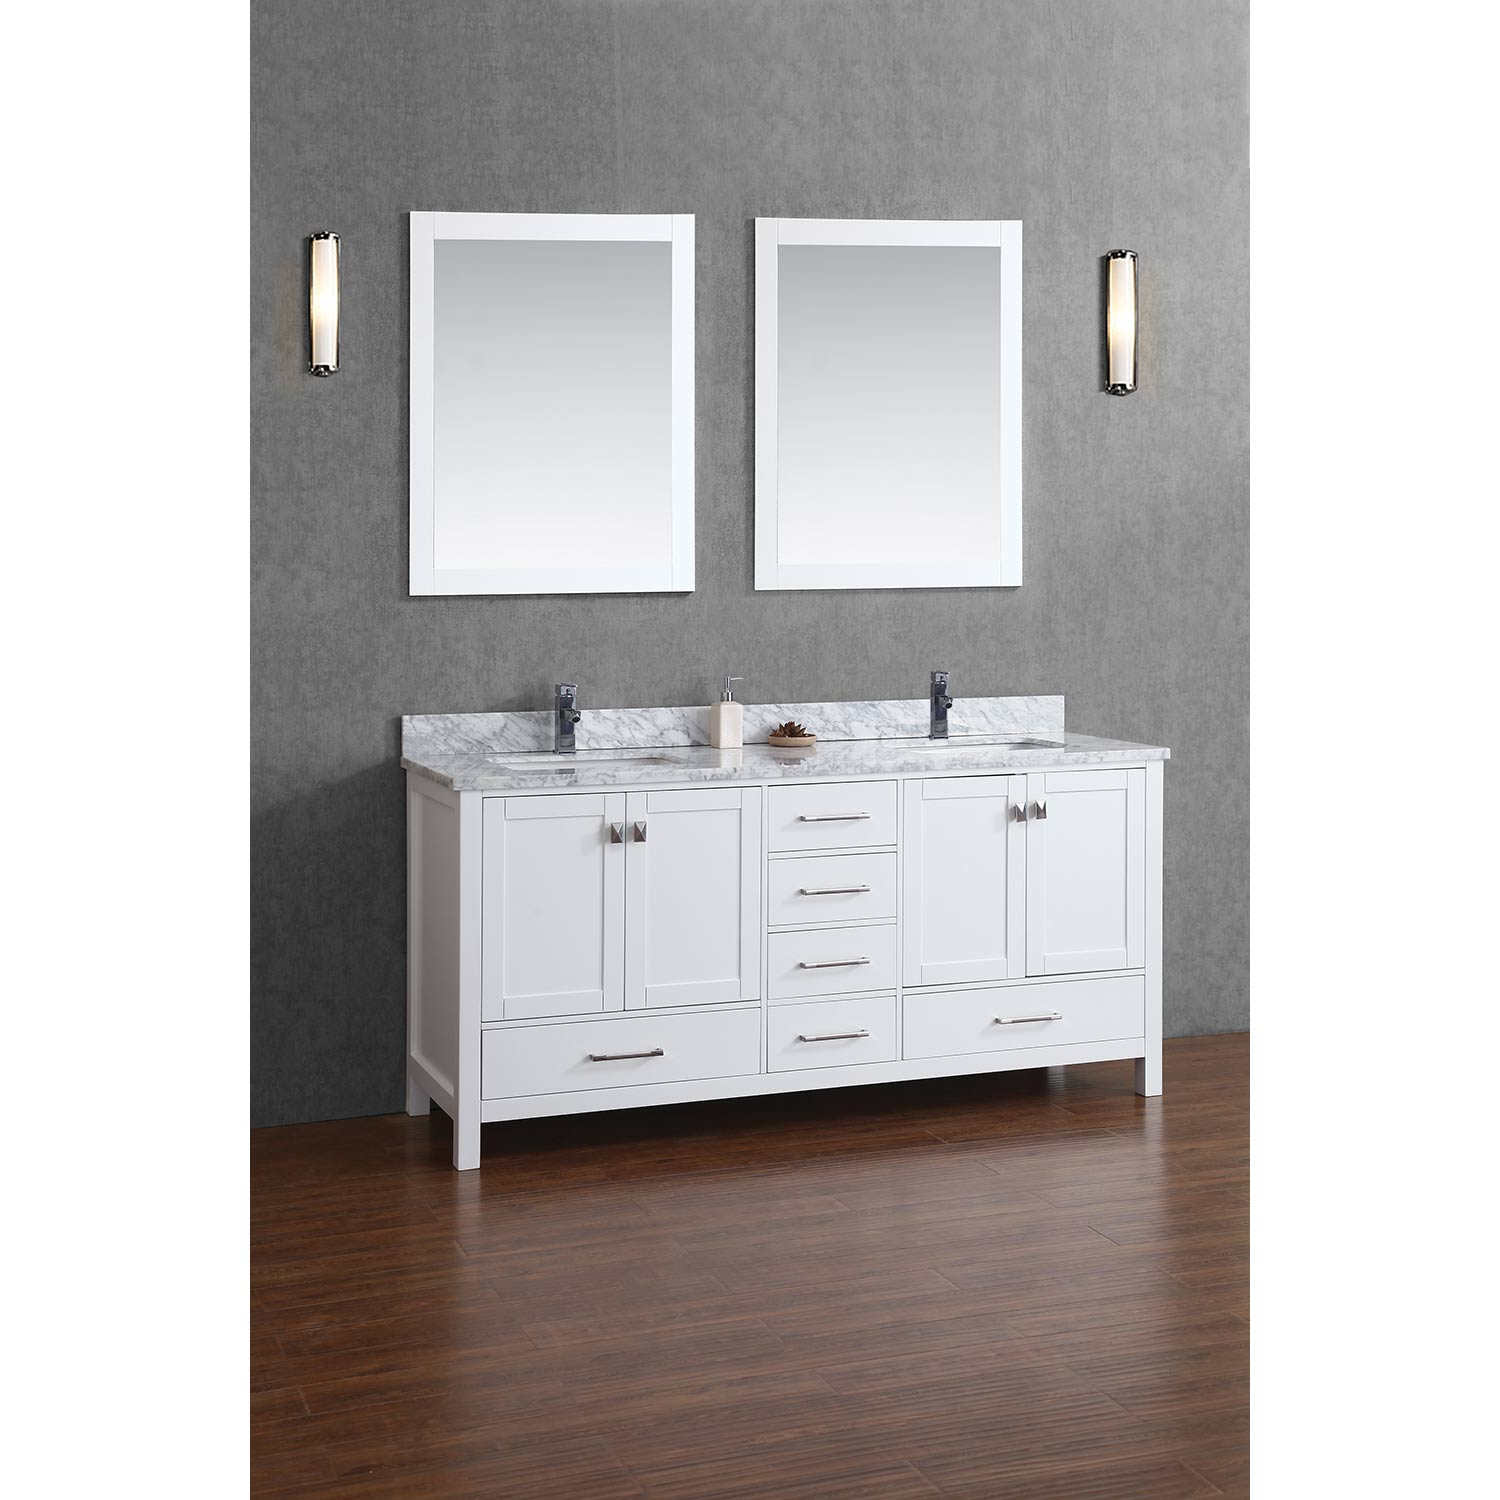 depot newport vanities p the styles home white vanity makeup